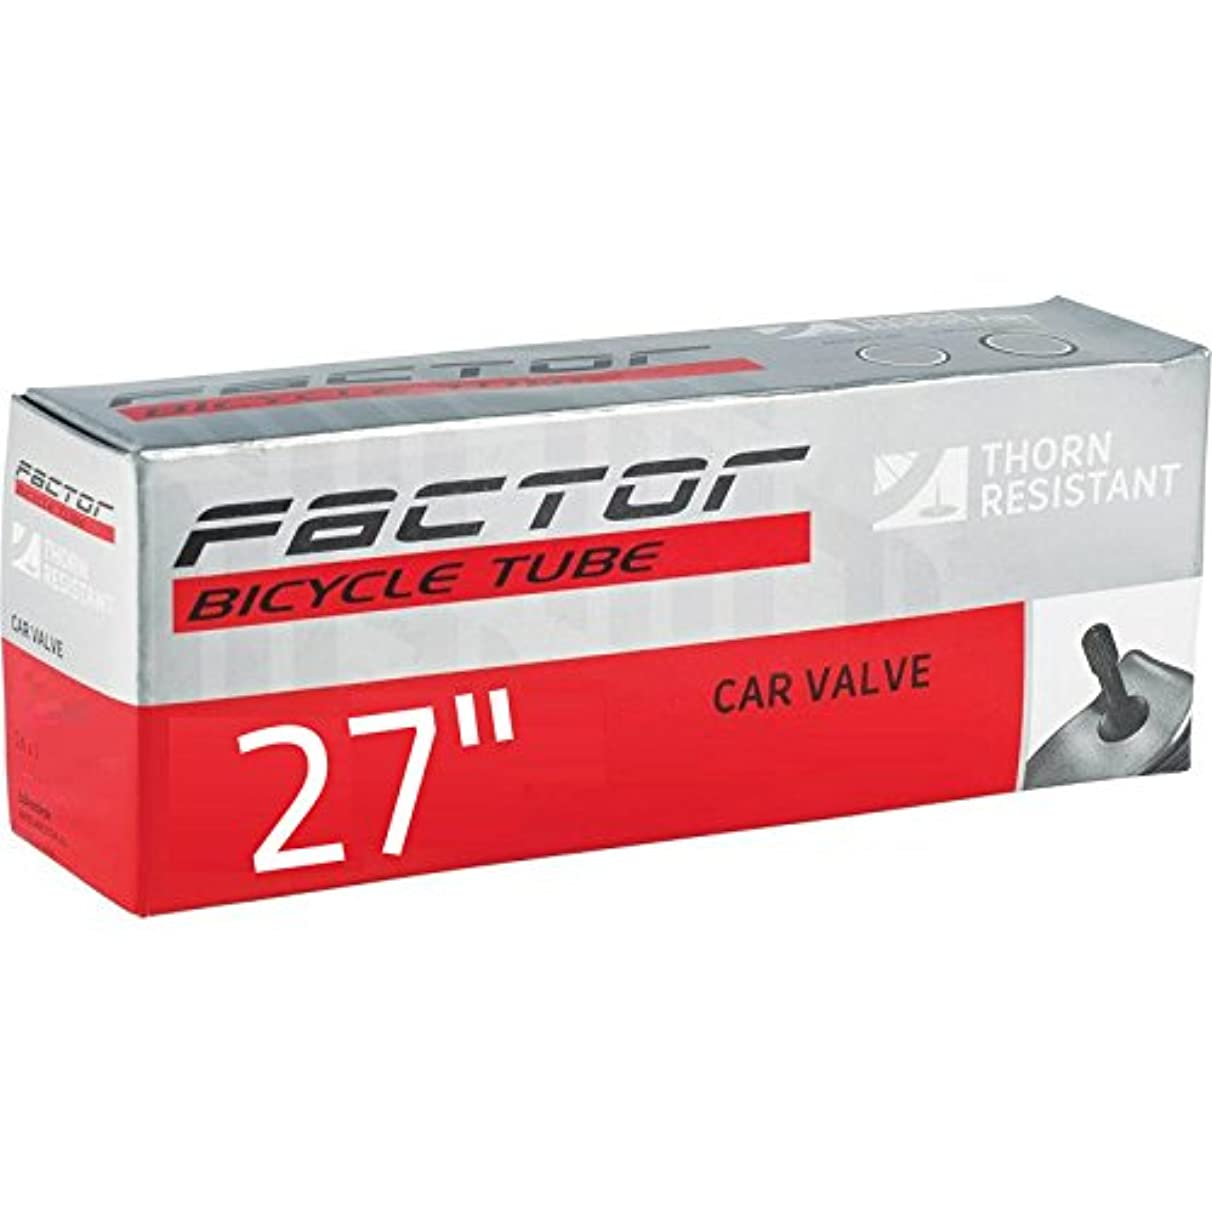 Factor Heavy Duty Thorn Puncture Resistant Tube 27